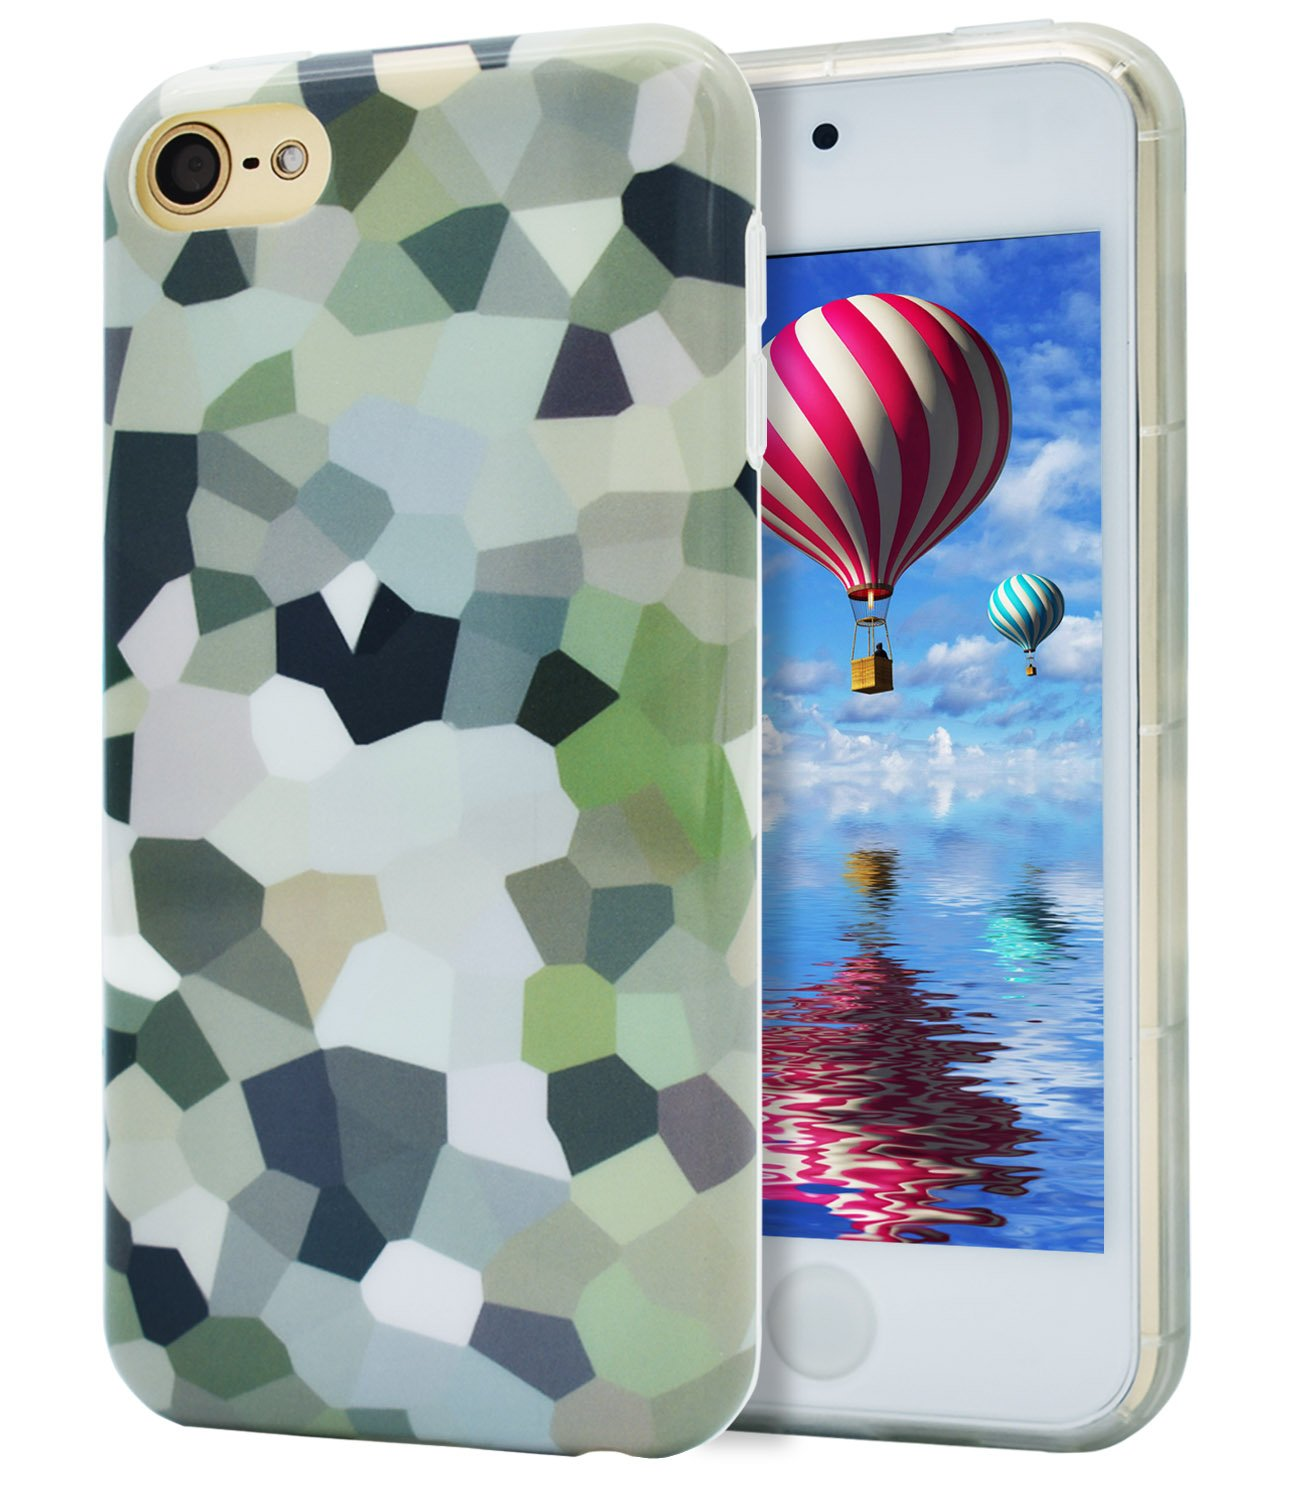 iPod Touch 6 Case, iPod Touch 5 Case, Dailylux Hard PC + Soft TPU Edge Protection Ultra thin Shockproof Cover with Air Cushion Technology Cover for iPod Touch 5th/6th Generation-Clear